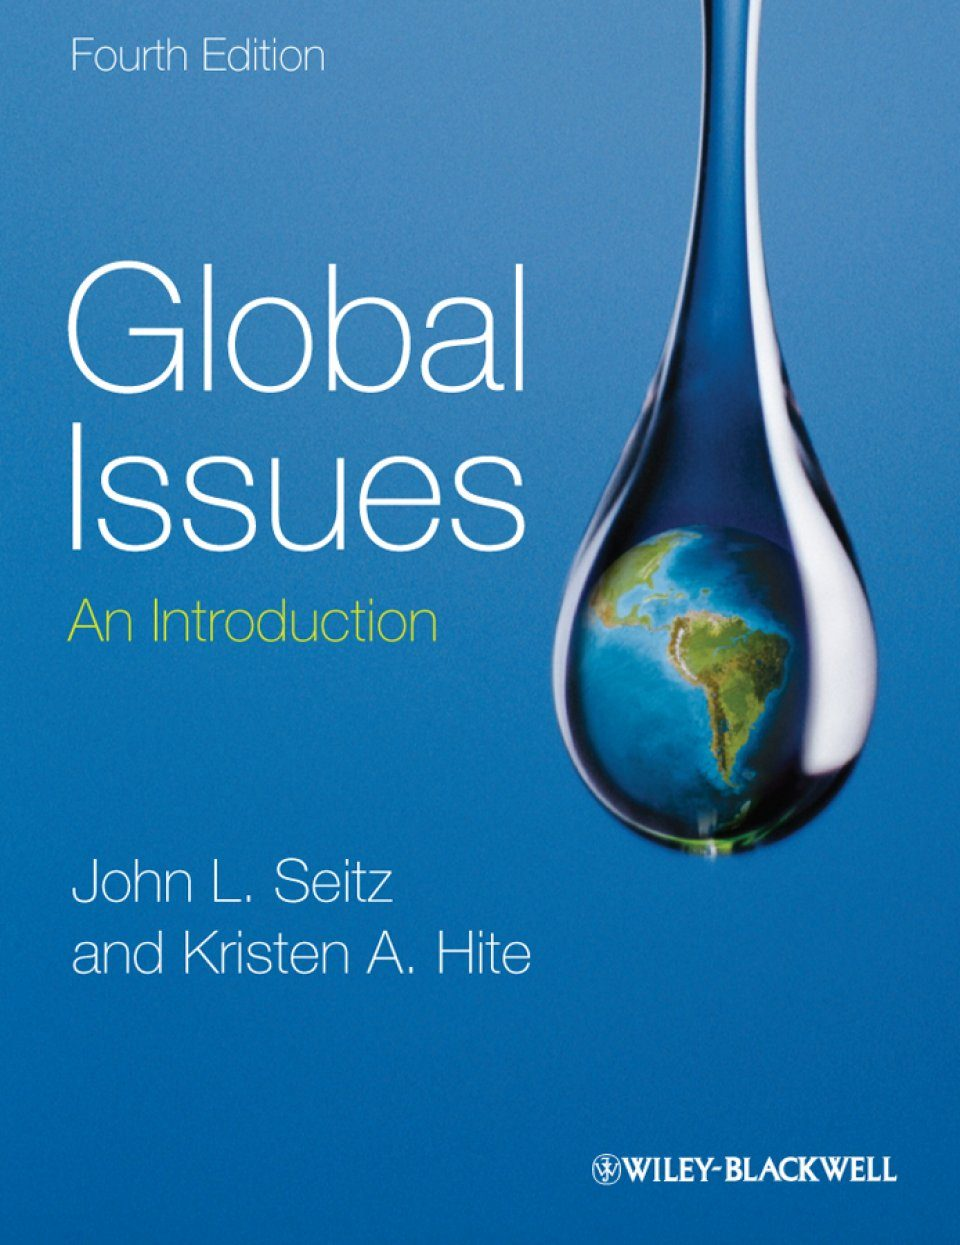 an introduction to the issue of global stratification Global stratification not only is each society stratified, but in a global perspective, societies are stratified in relation to one another sociologists employ three broad categories to denote global stratification: most industrialized nations, industrializing nations, and least industrialized nations.